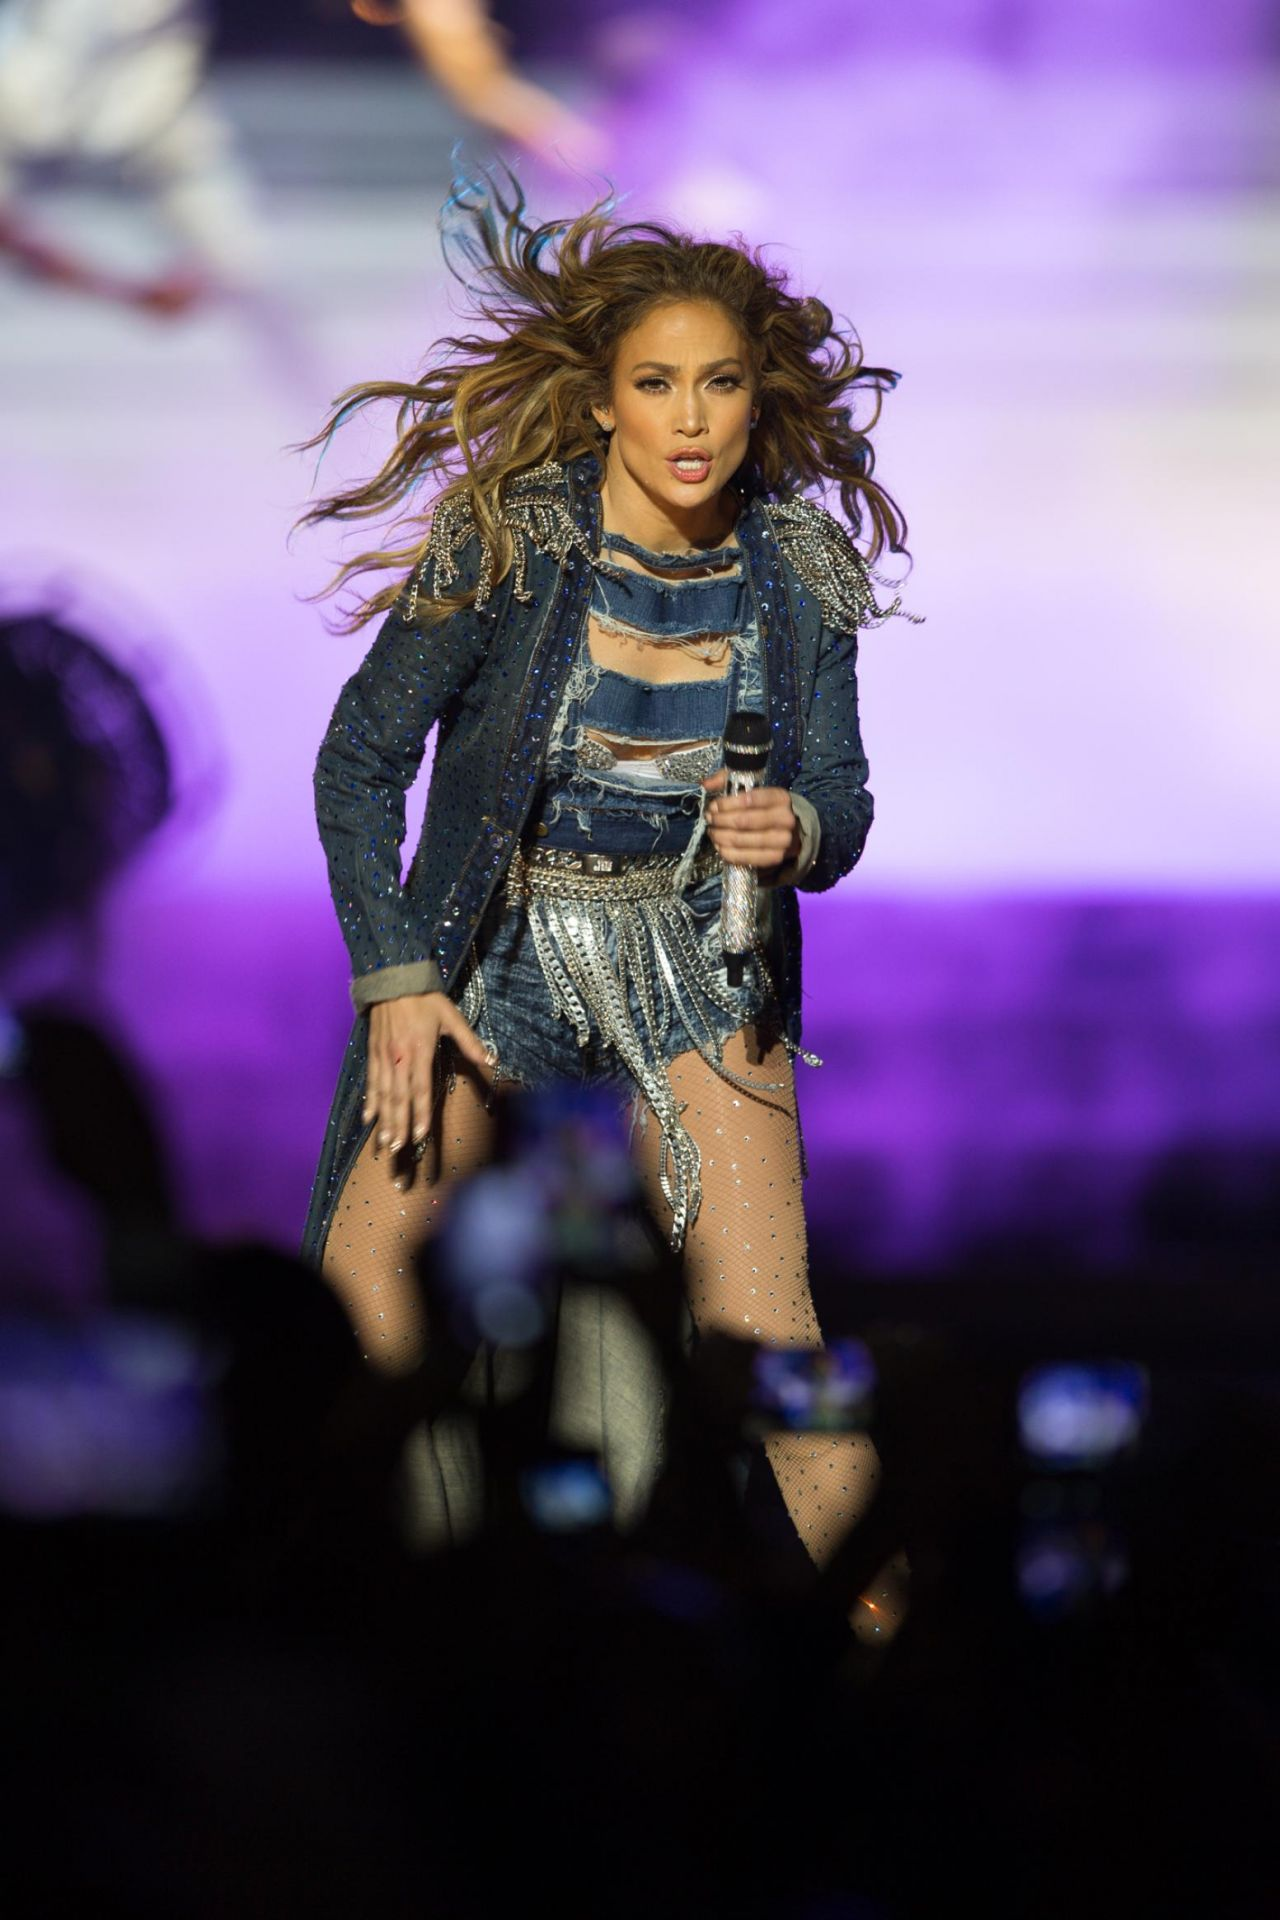 Jennifer Lopez Performs Live at the Meydan Racecourse in Dubai - March 2014